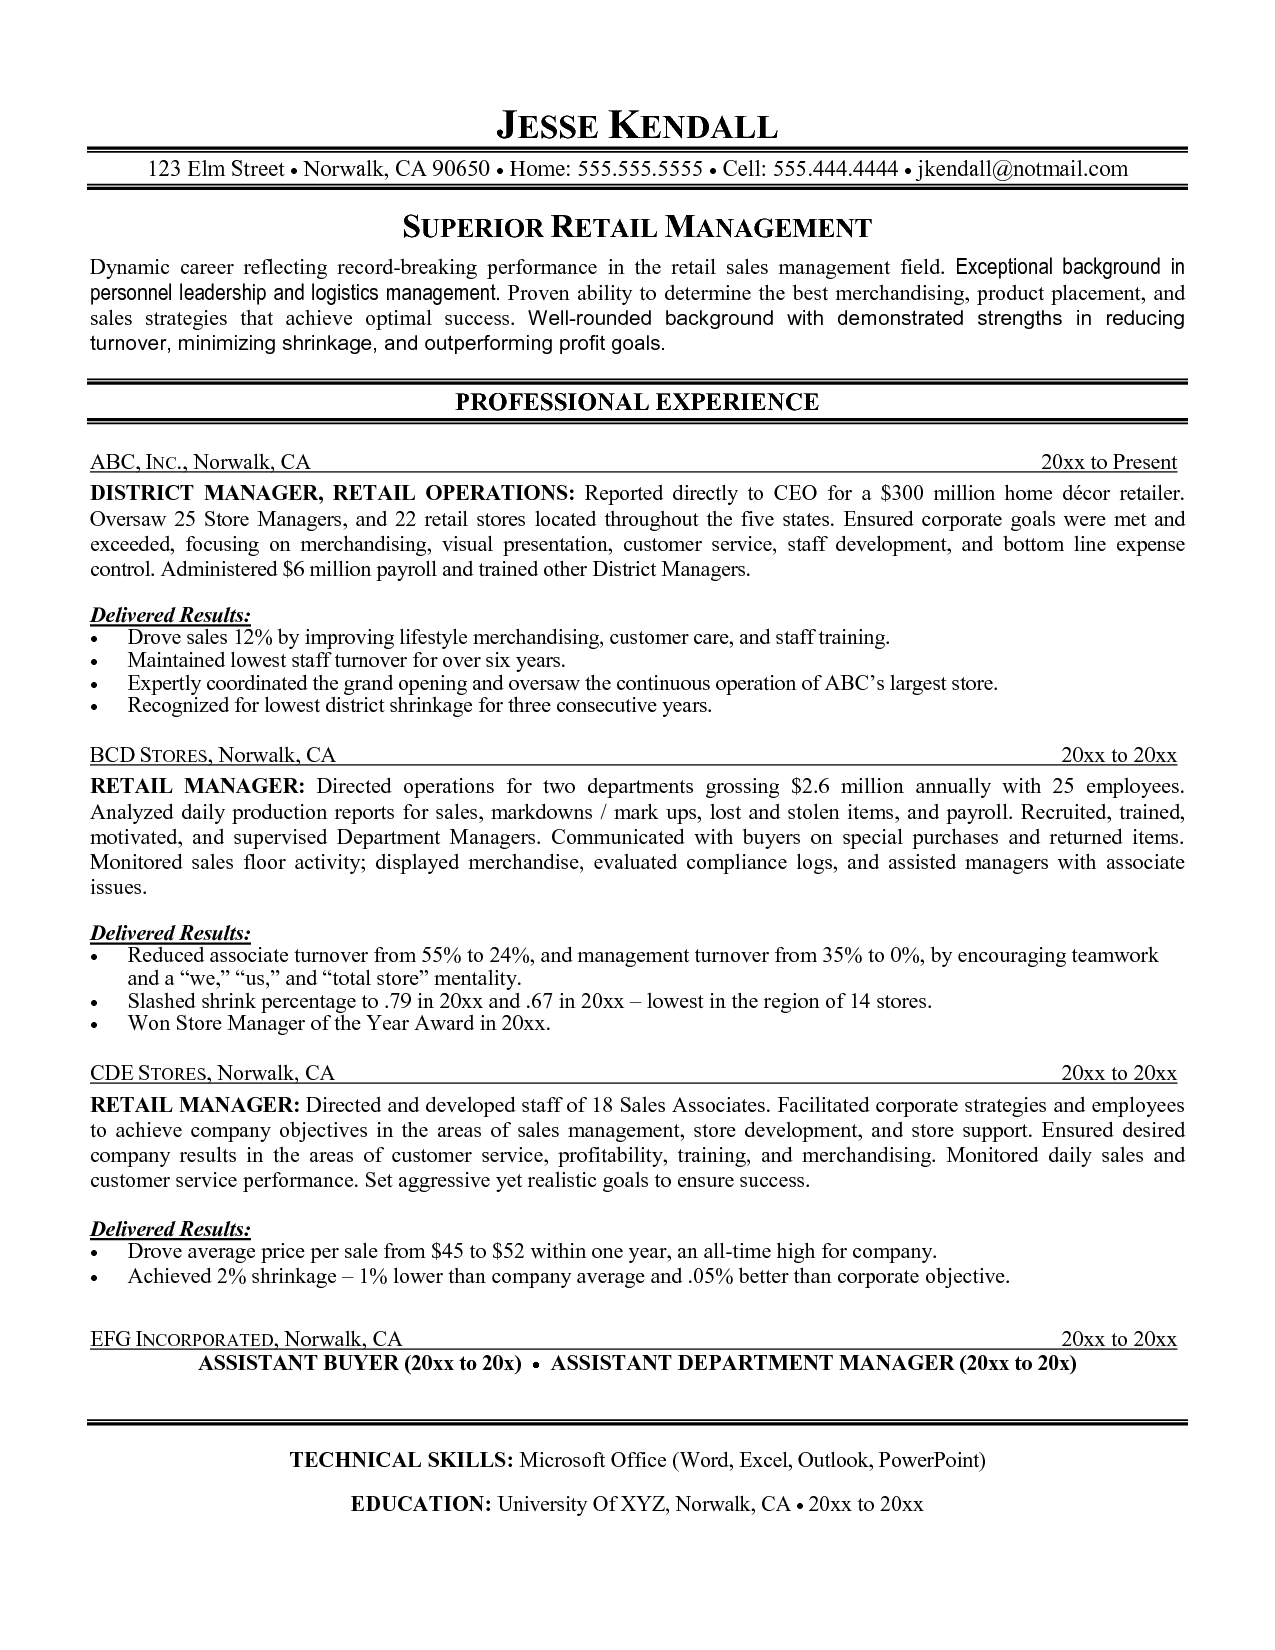 resume Retail Resume Examples general retail resume sample samplebusinessresume com management examples objective samples